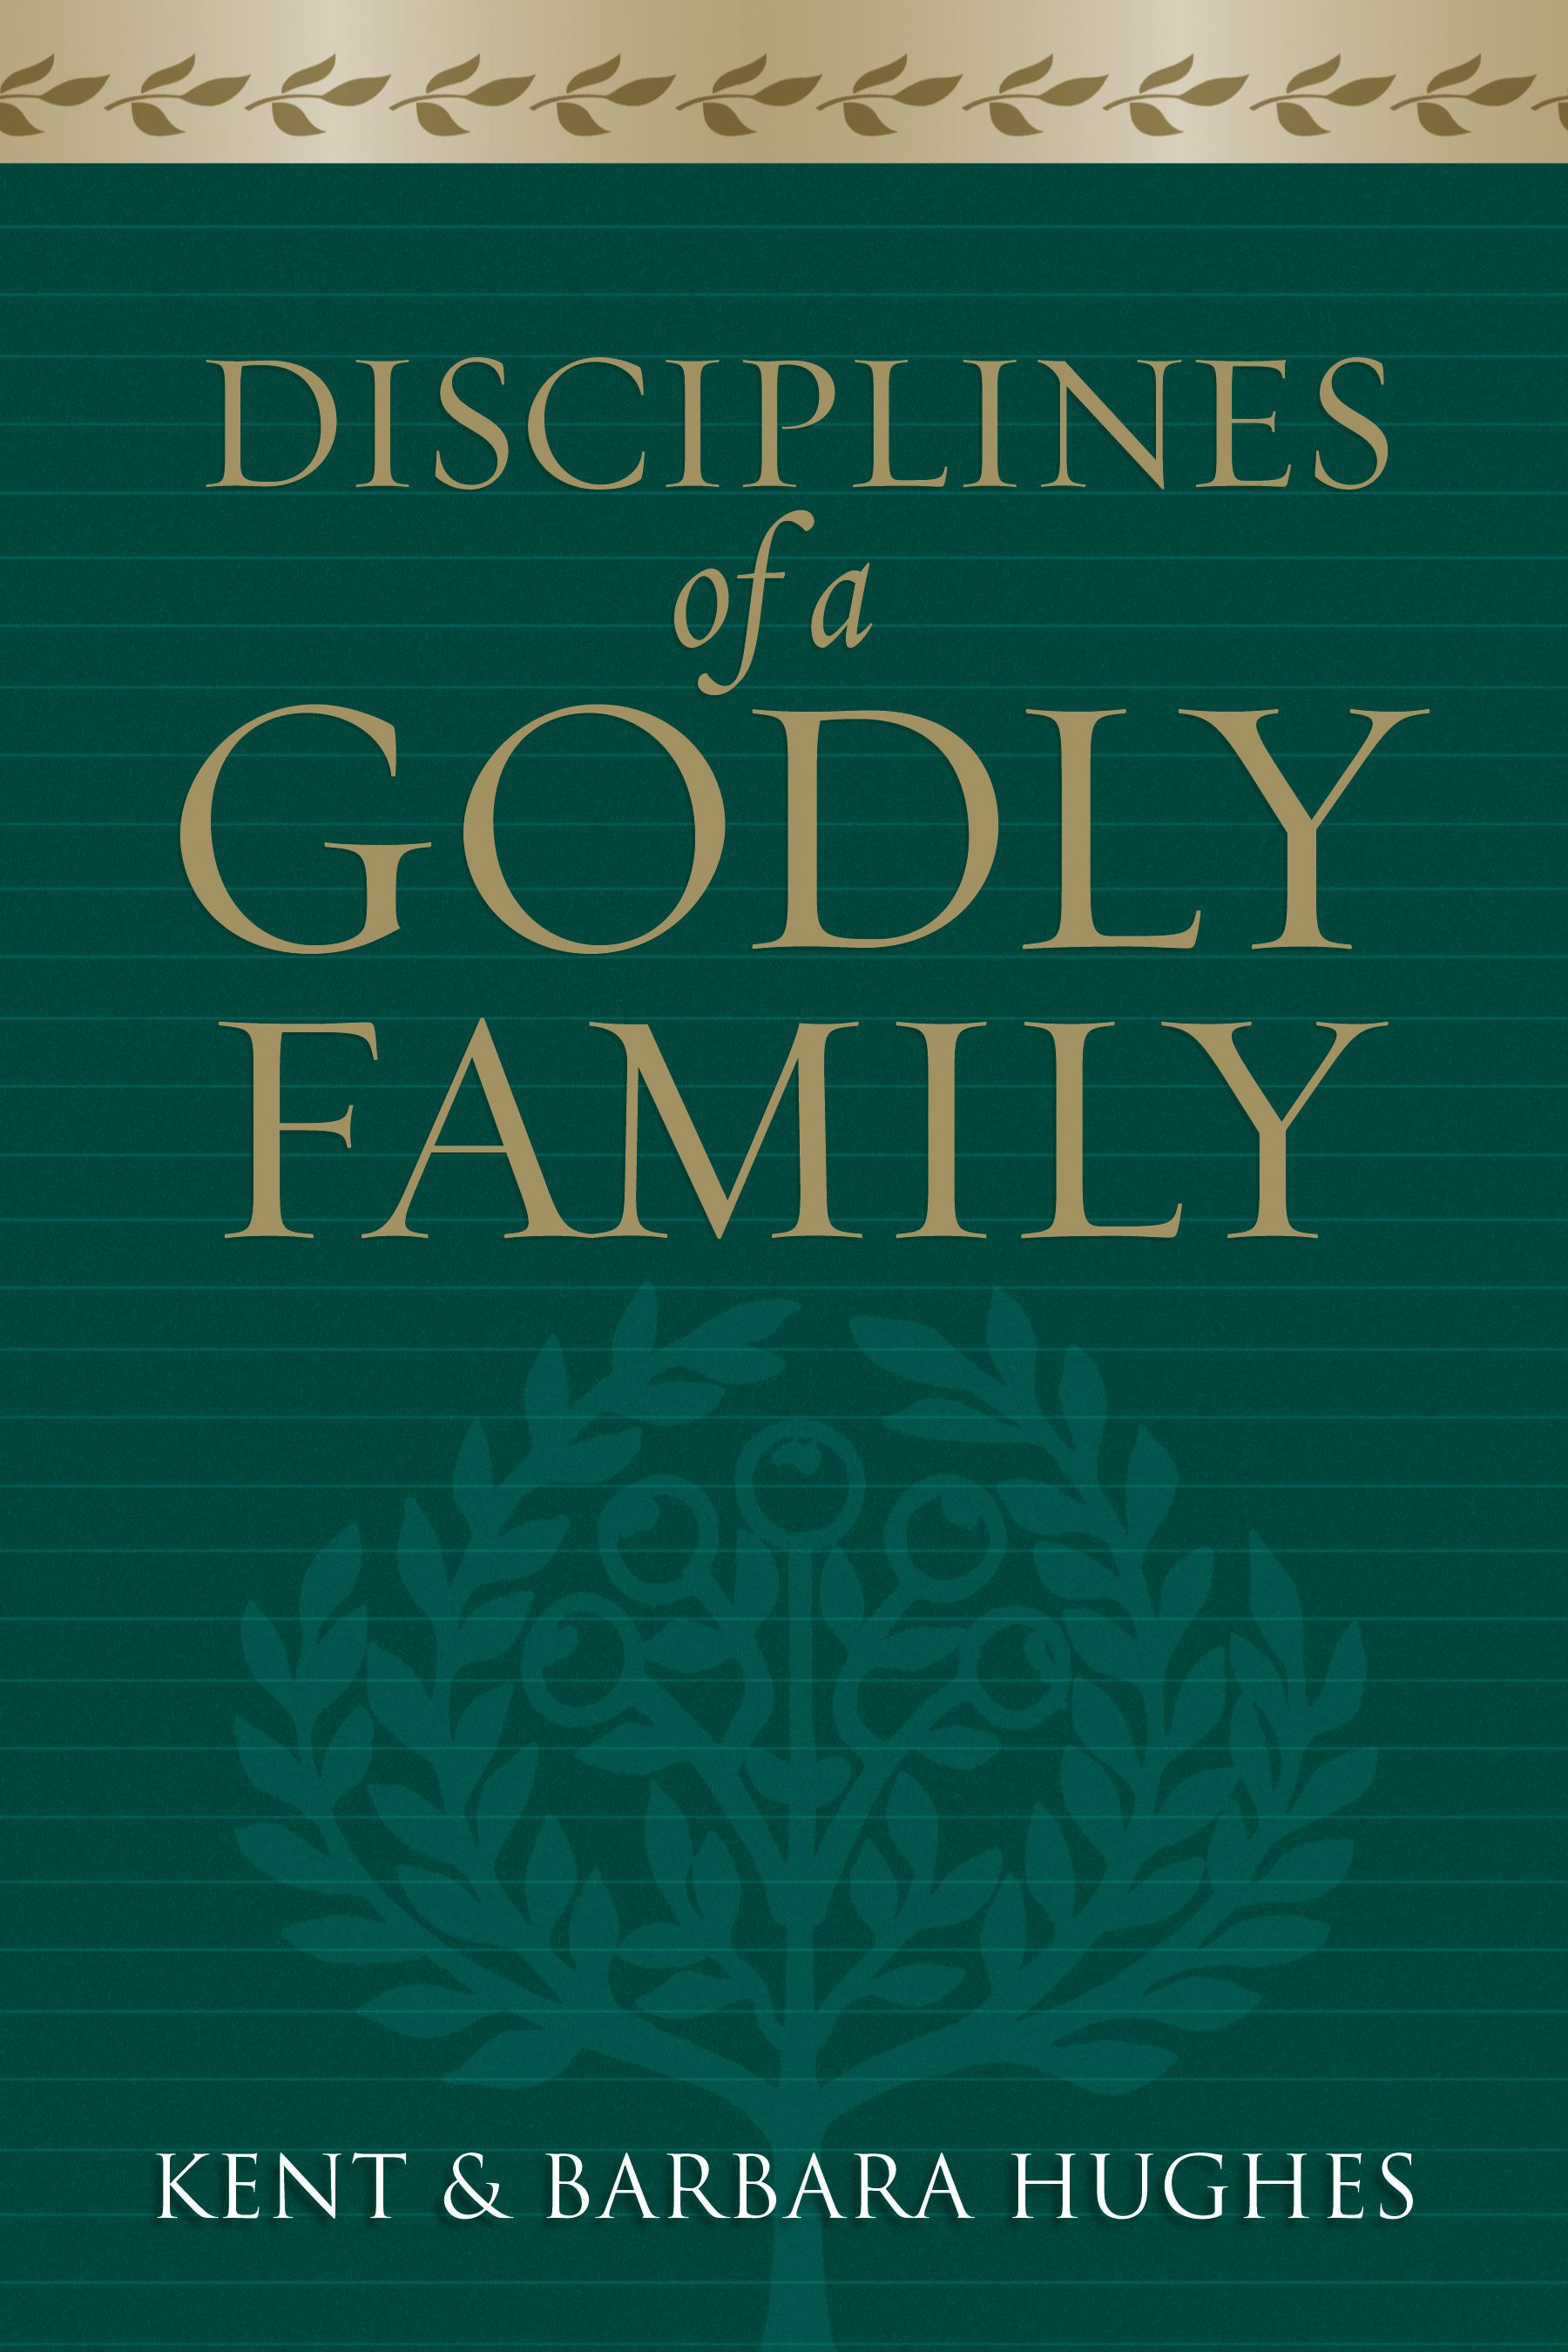 Disciplines of a Godly Family by R. Kent Hughes, ISBN: 9781581349412